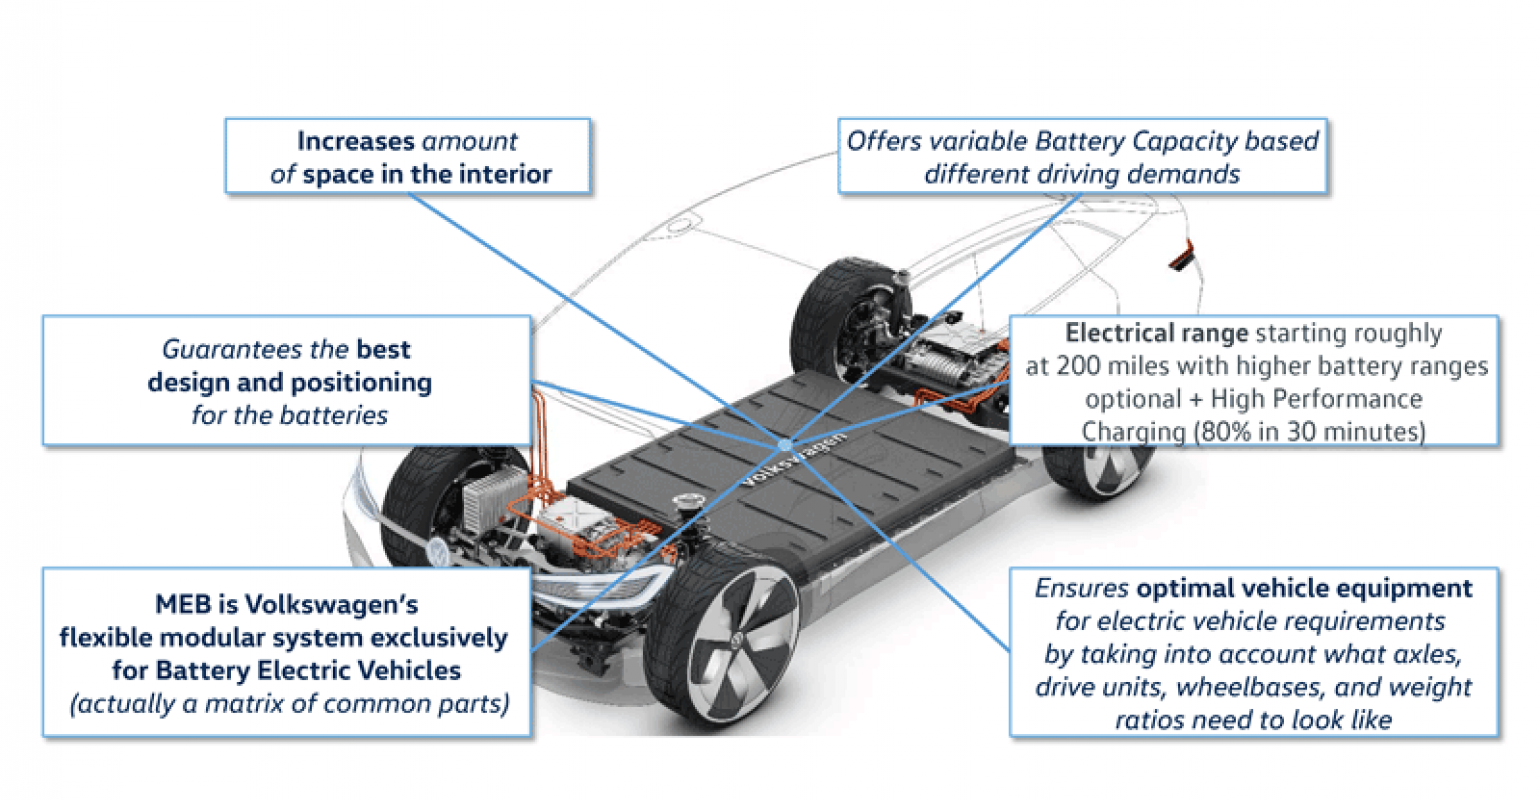 All Electric Meb Vehicle Platform To Drive New Firsts At Volkswagen Rh  Wardsauto Com Bev Battery Bev Smith Chevrolet